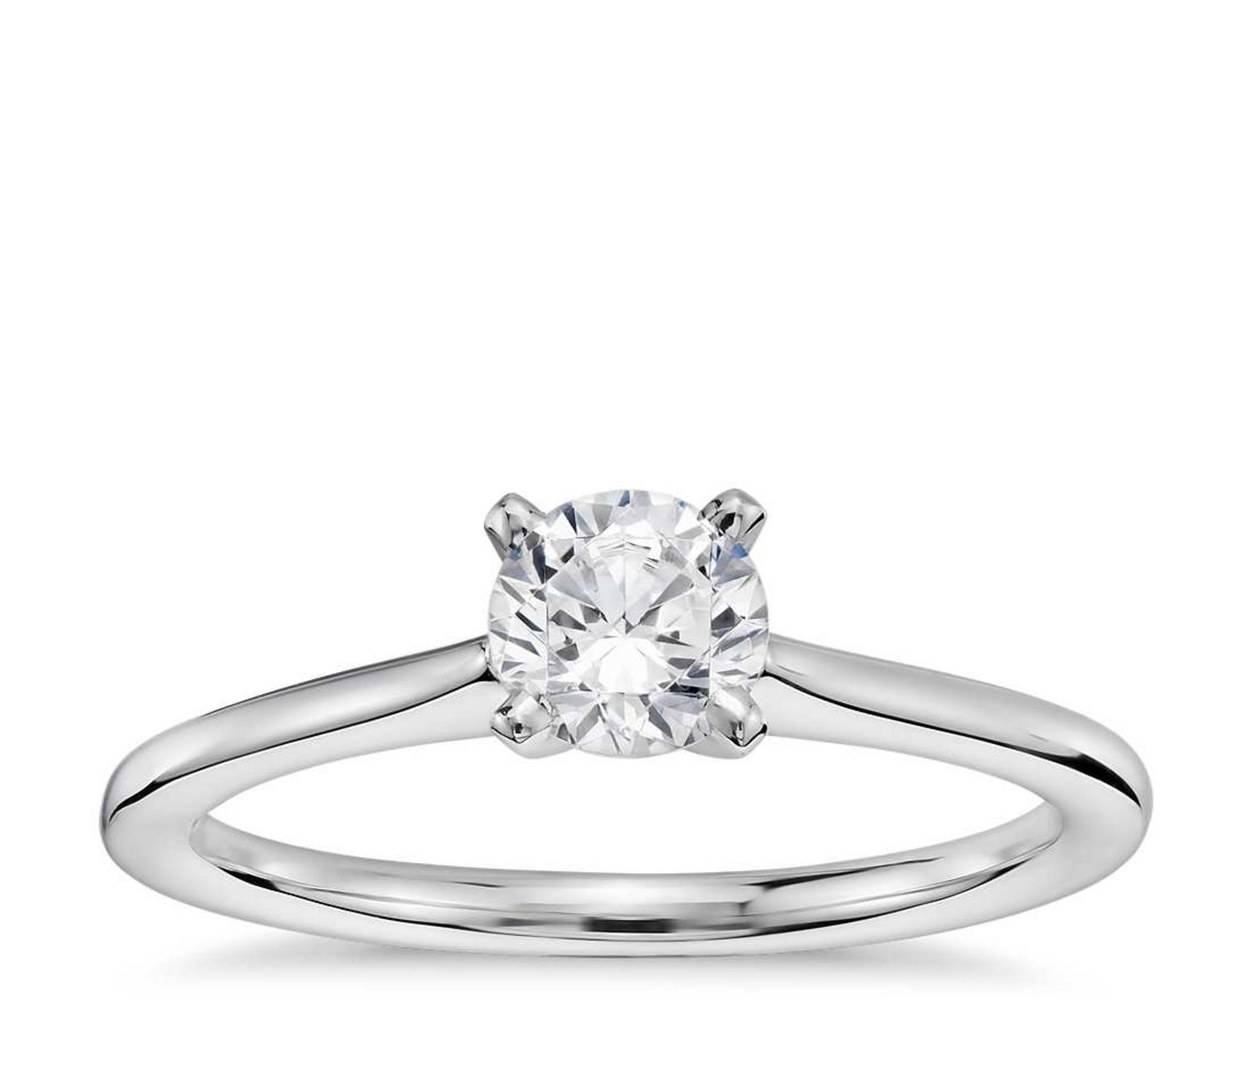 Affordable Engagement Rings Under $1,000 | Glamour Pertaining To Engagement Rings For Women Under  (View 1 of 15)